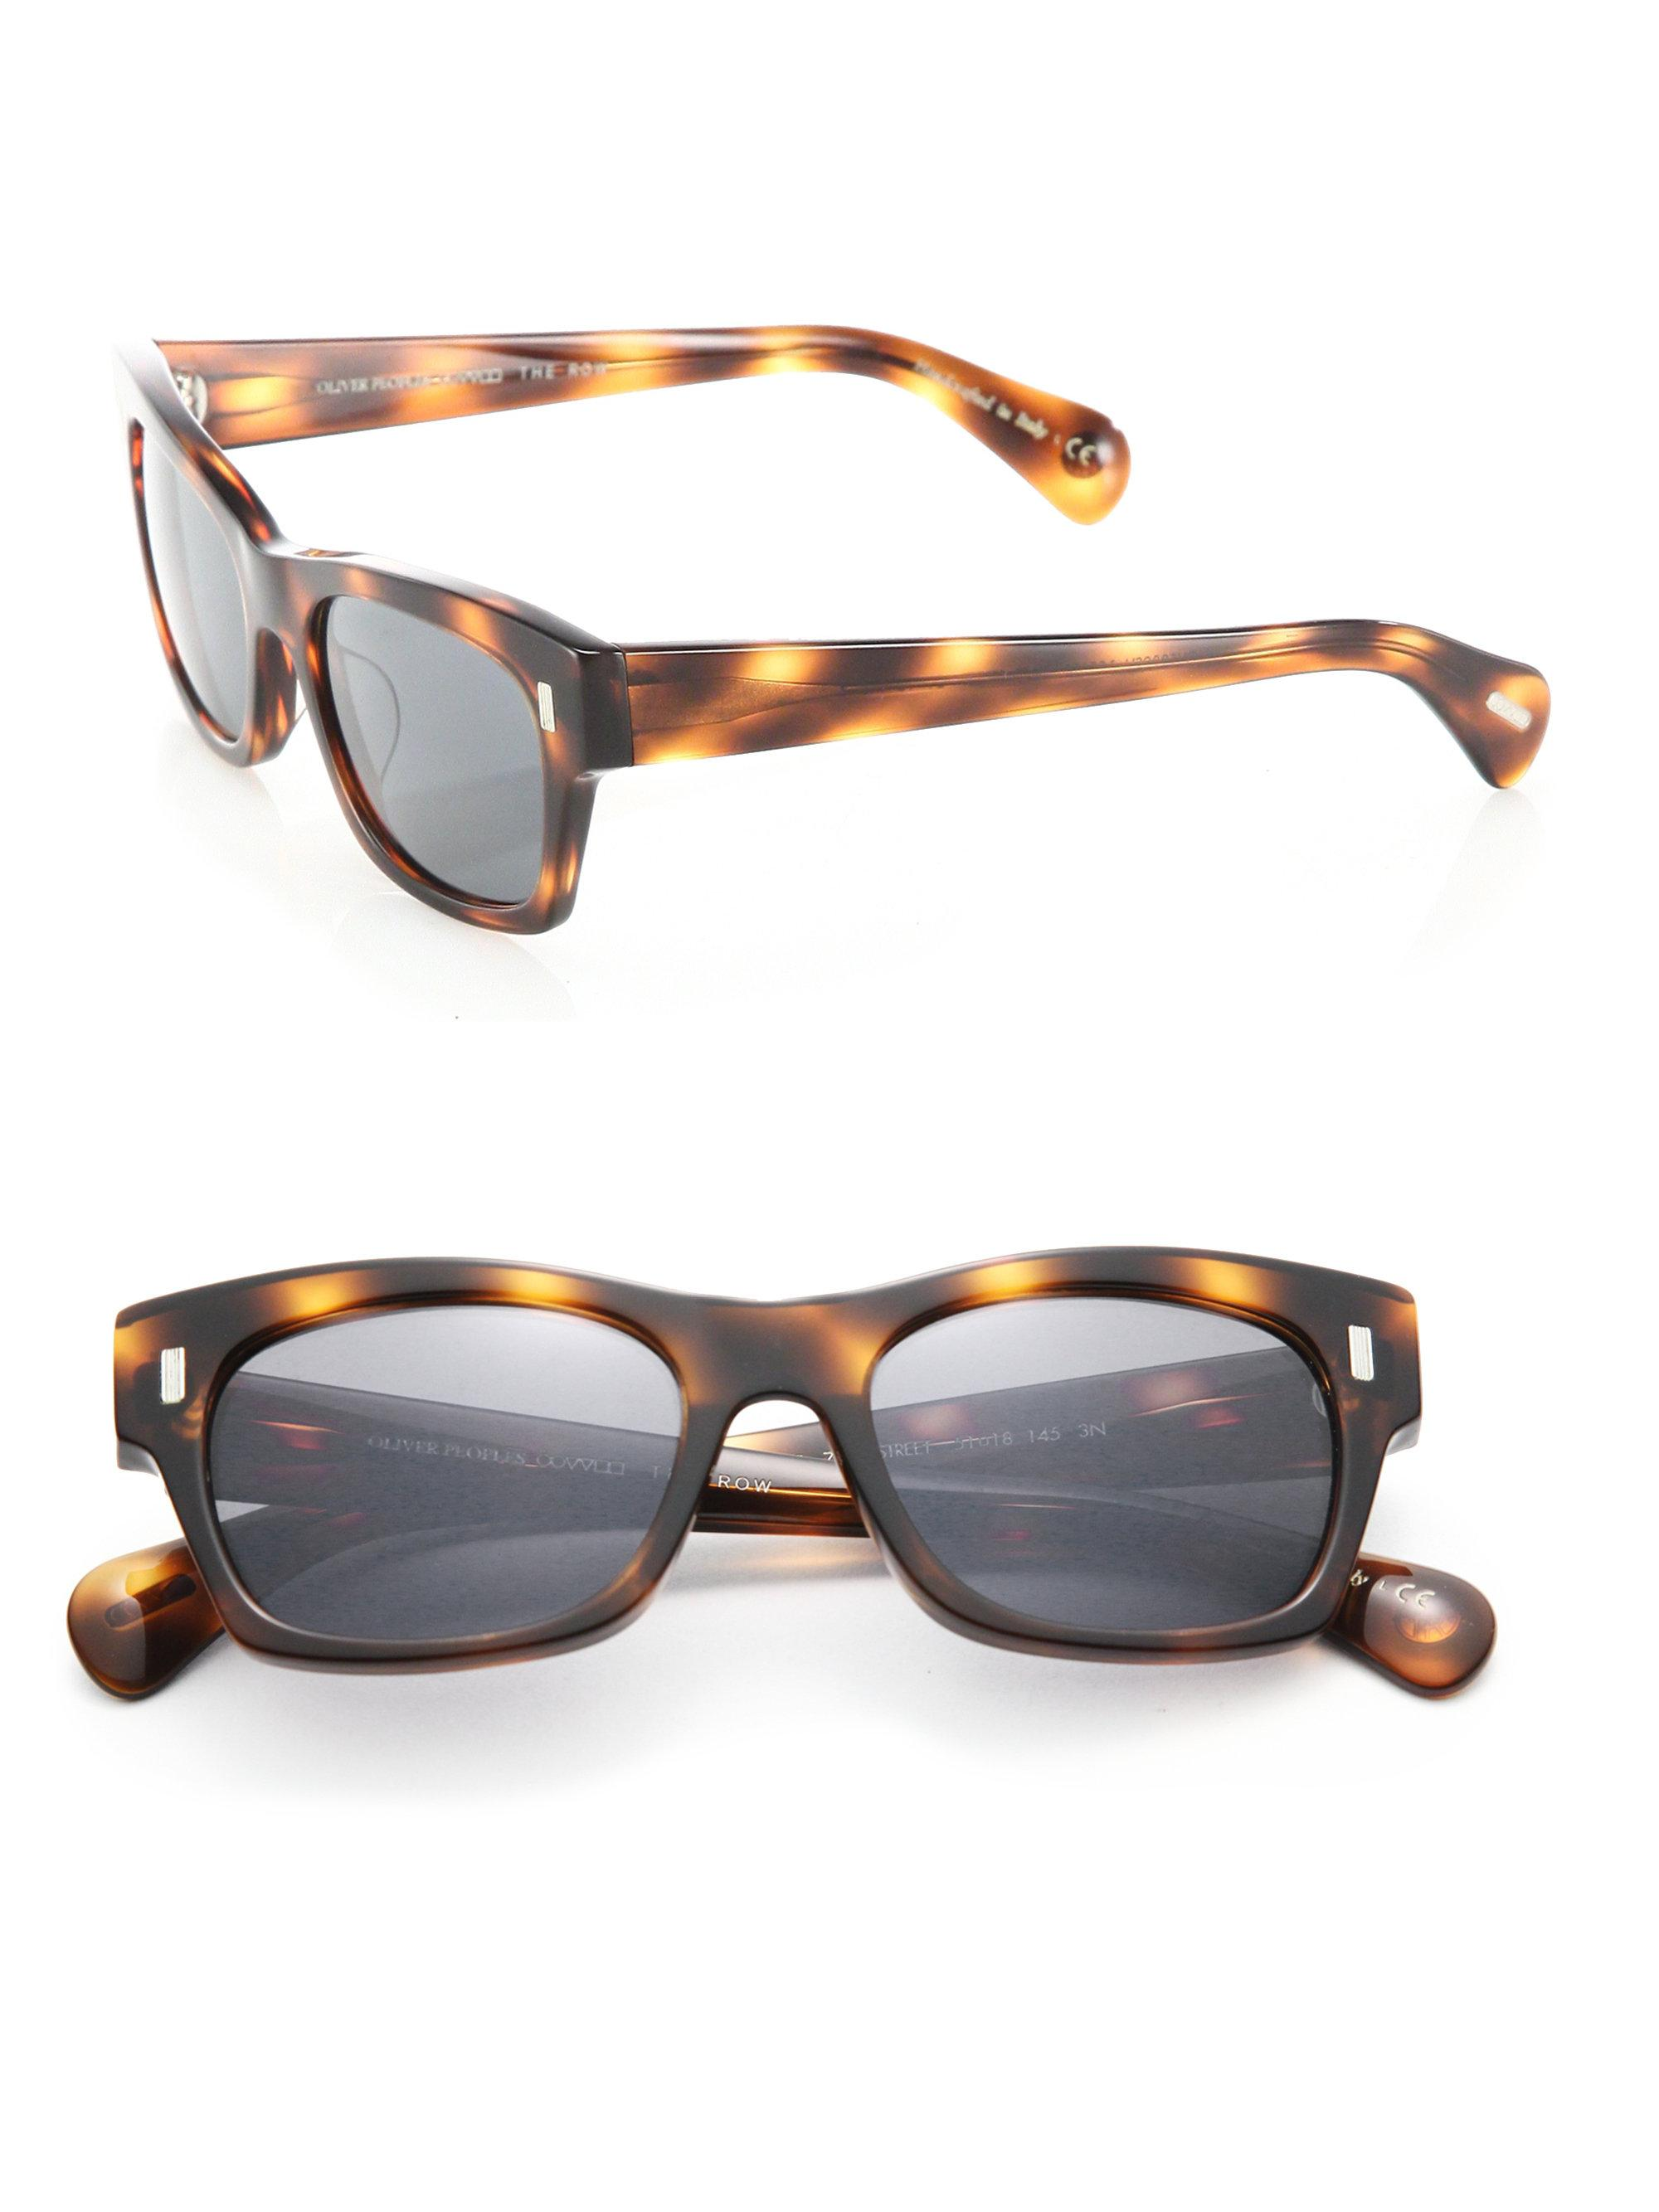 187f2eb1dd Oliver Peoples The Row For Oliver Peoples 71st Street 51mm Square ...